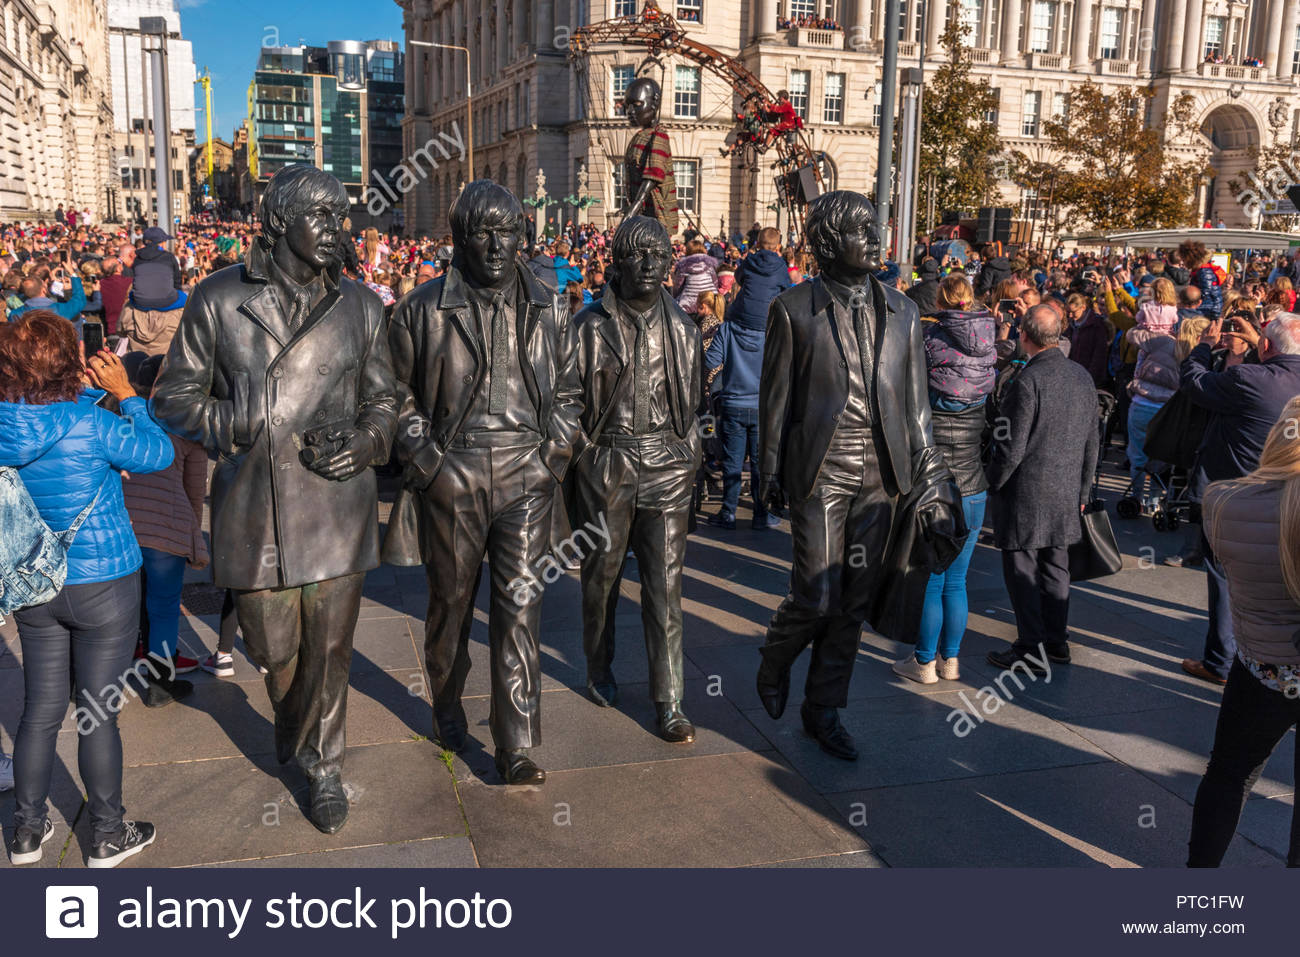 Royal De Luxe Giants visit Liverpool for the last time. The Beatles eem unconcerned Stock Photo